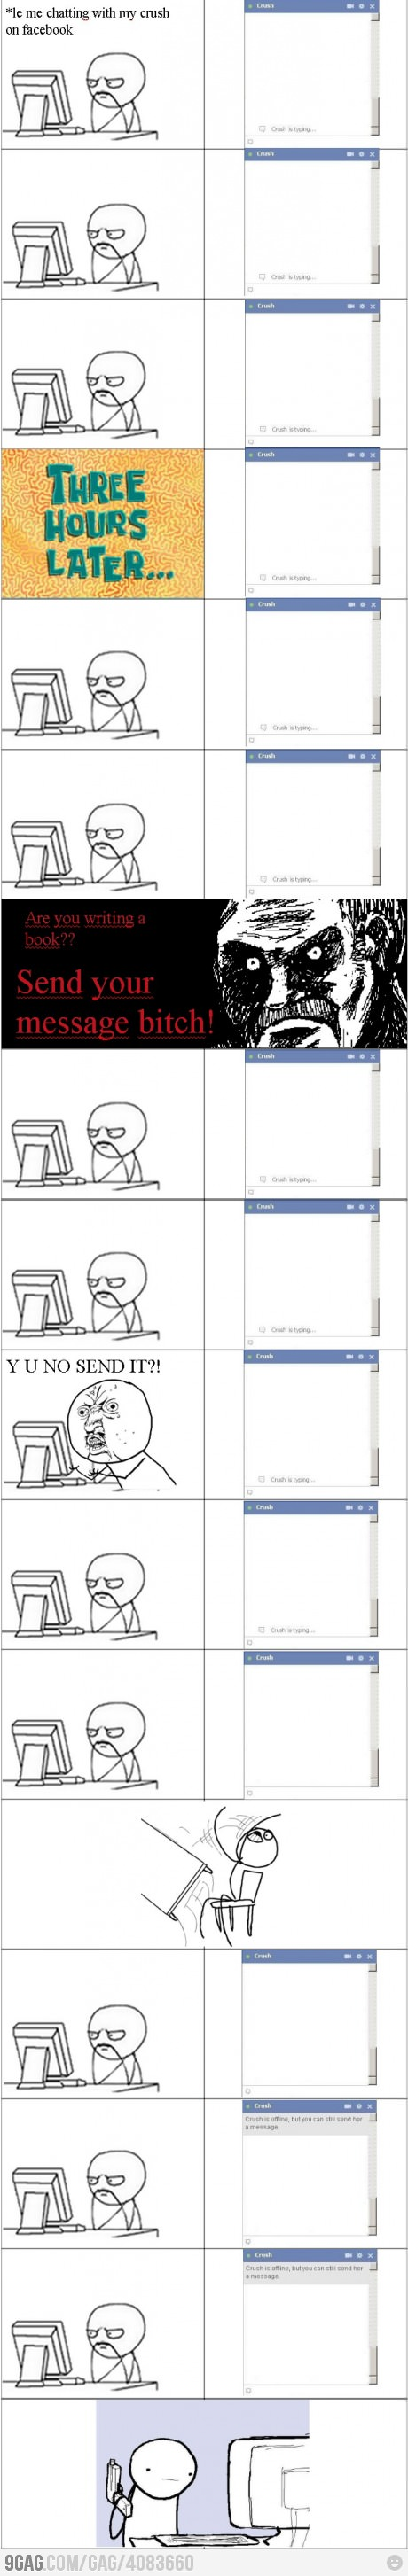 Y U NO SEND MESSAGE?!